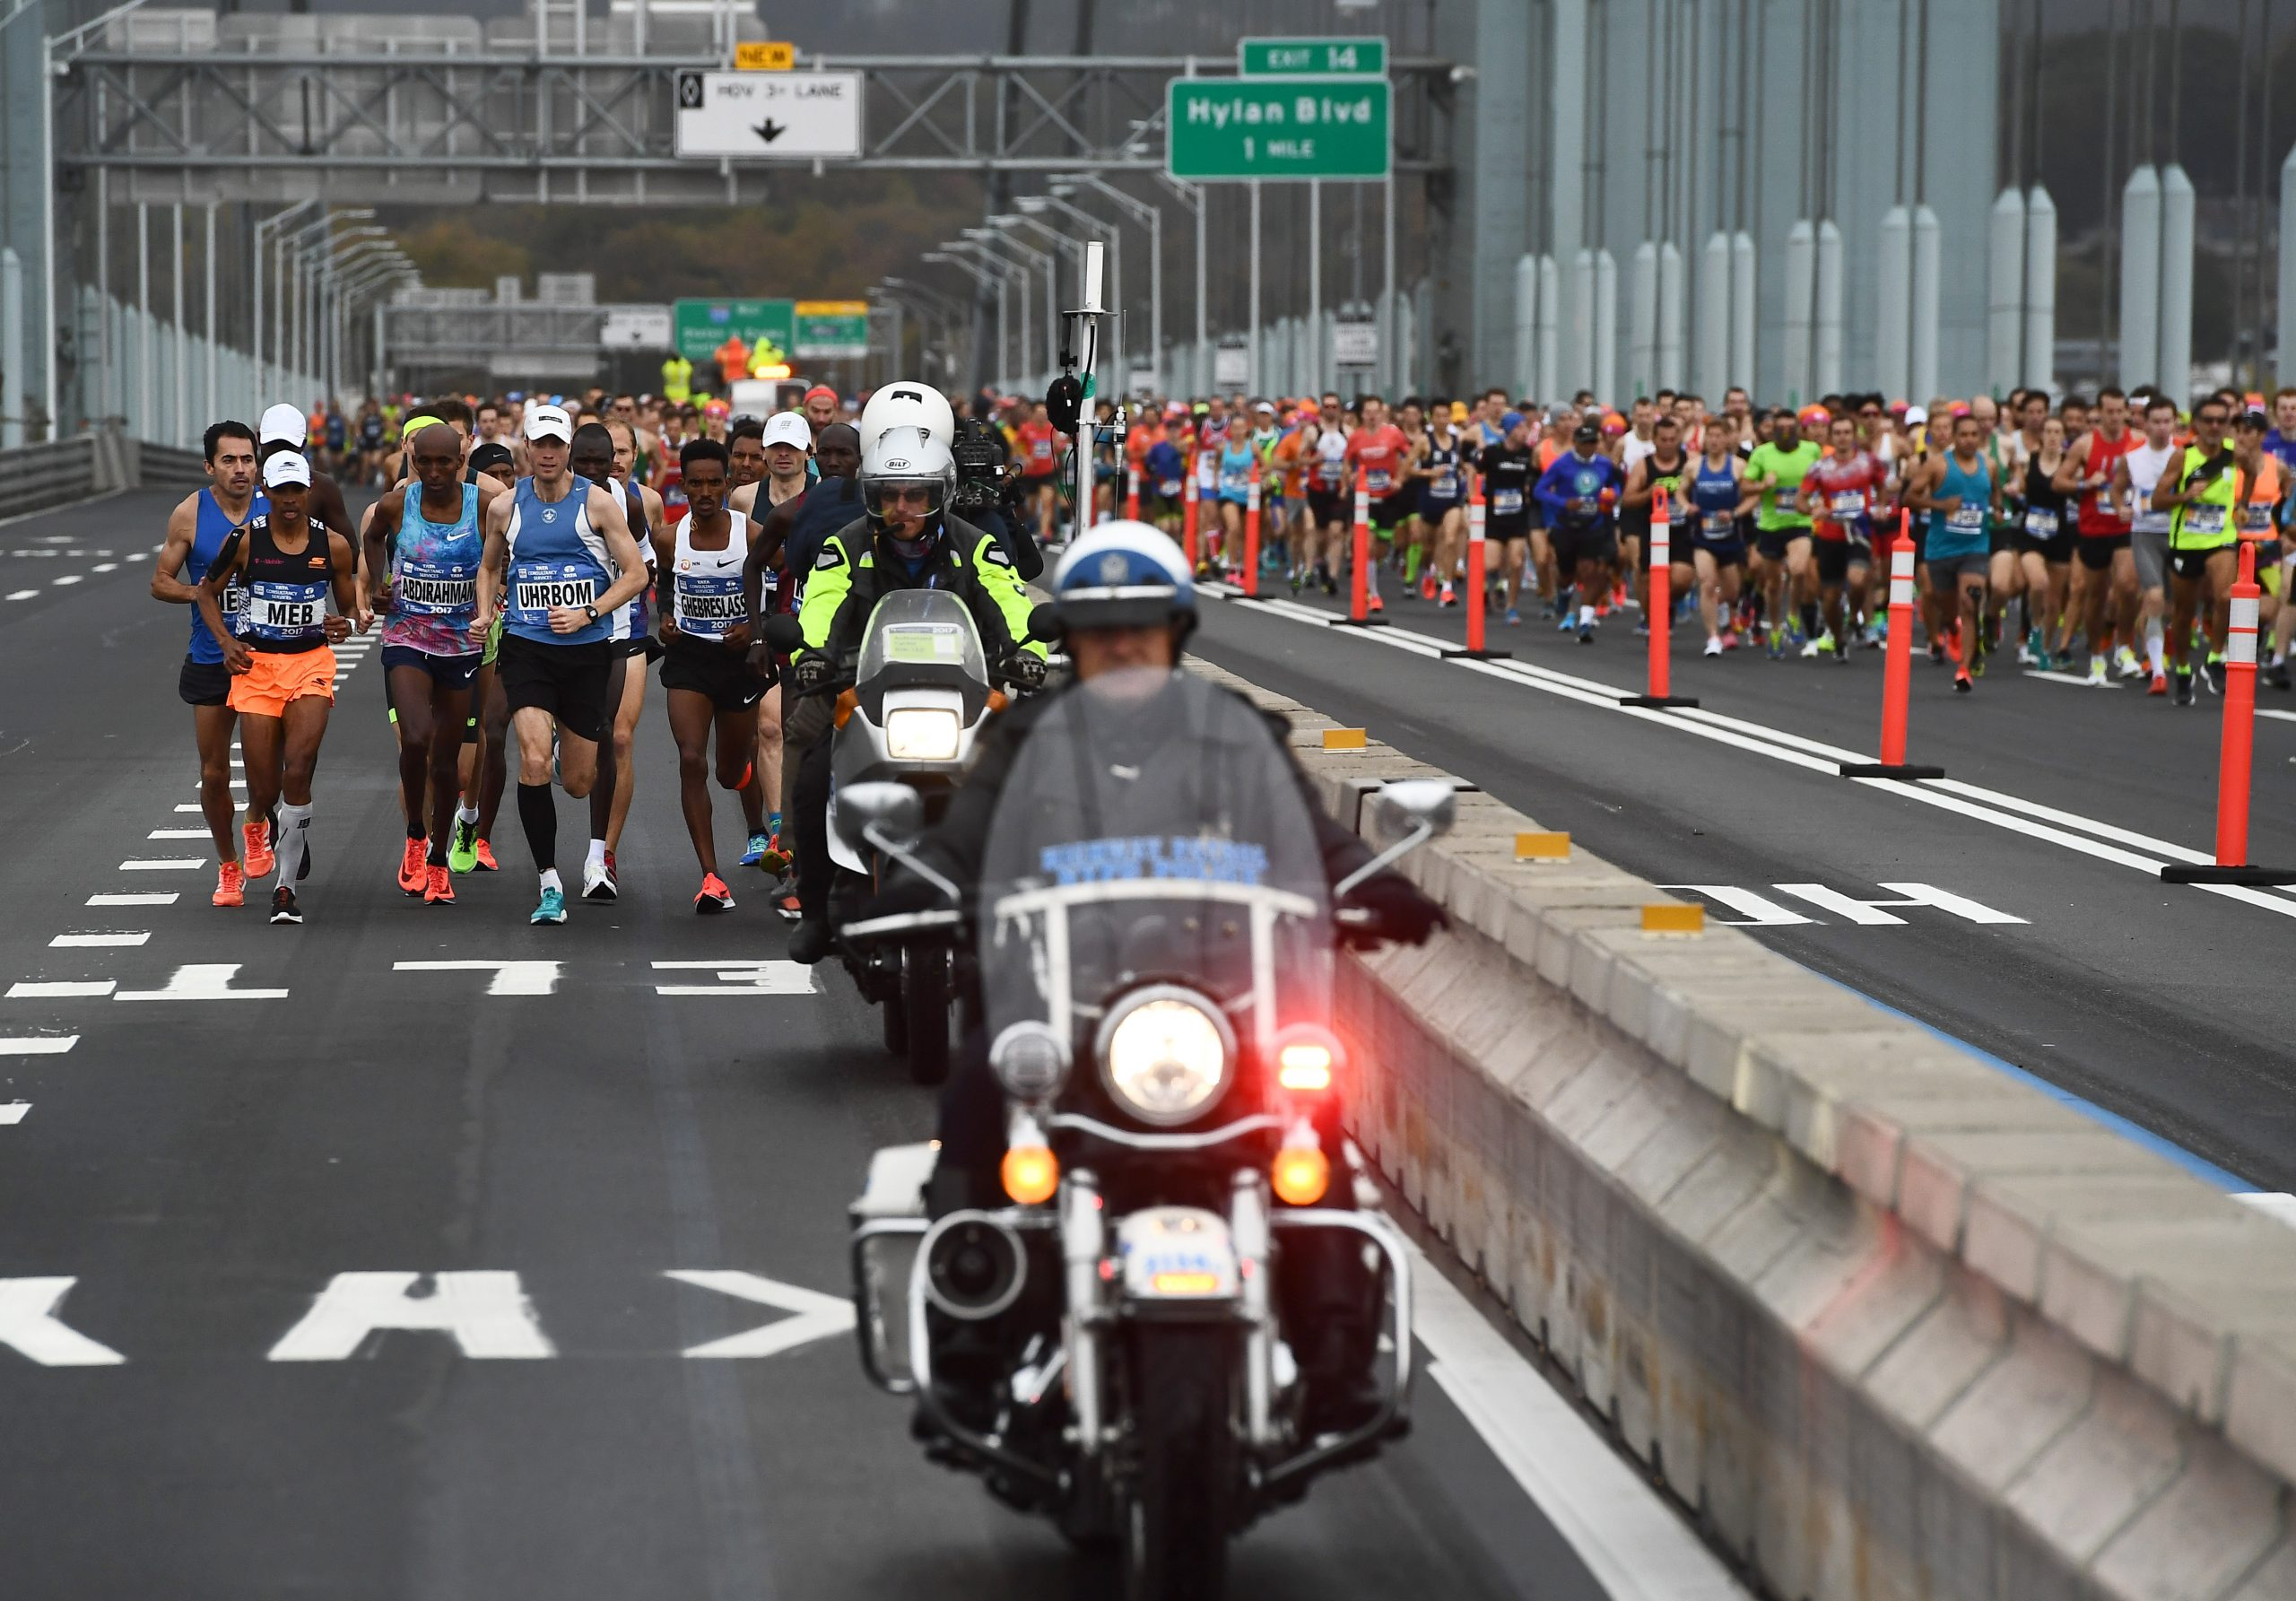 NYC Marathon Runners Stay the Course, Despite Last Week